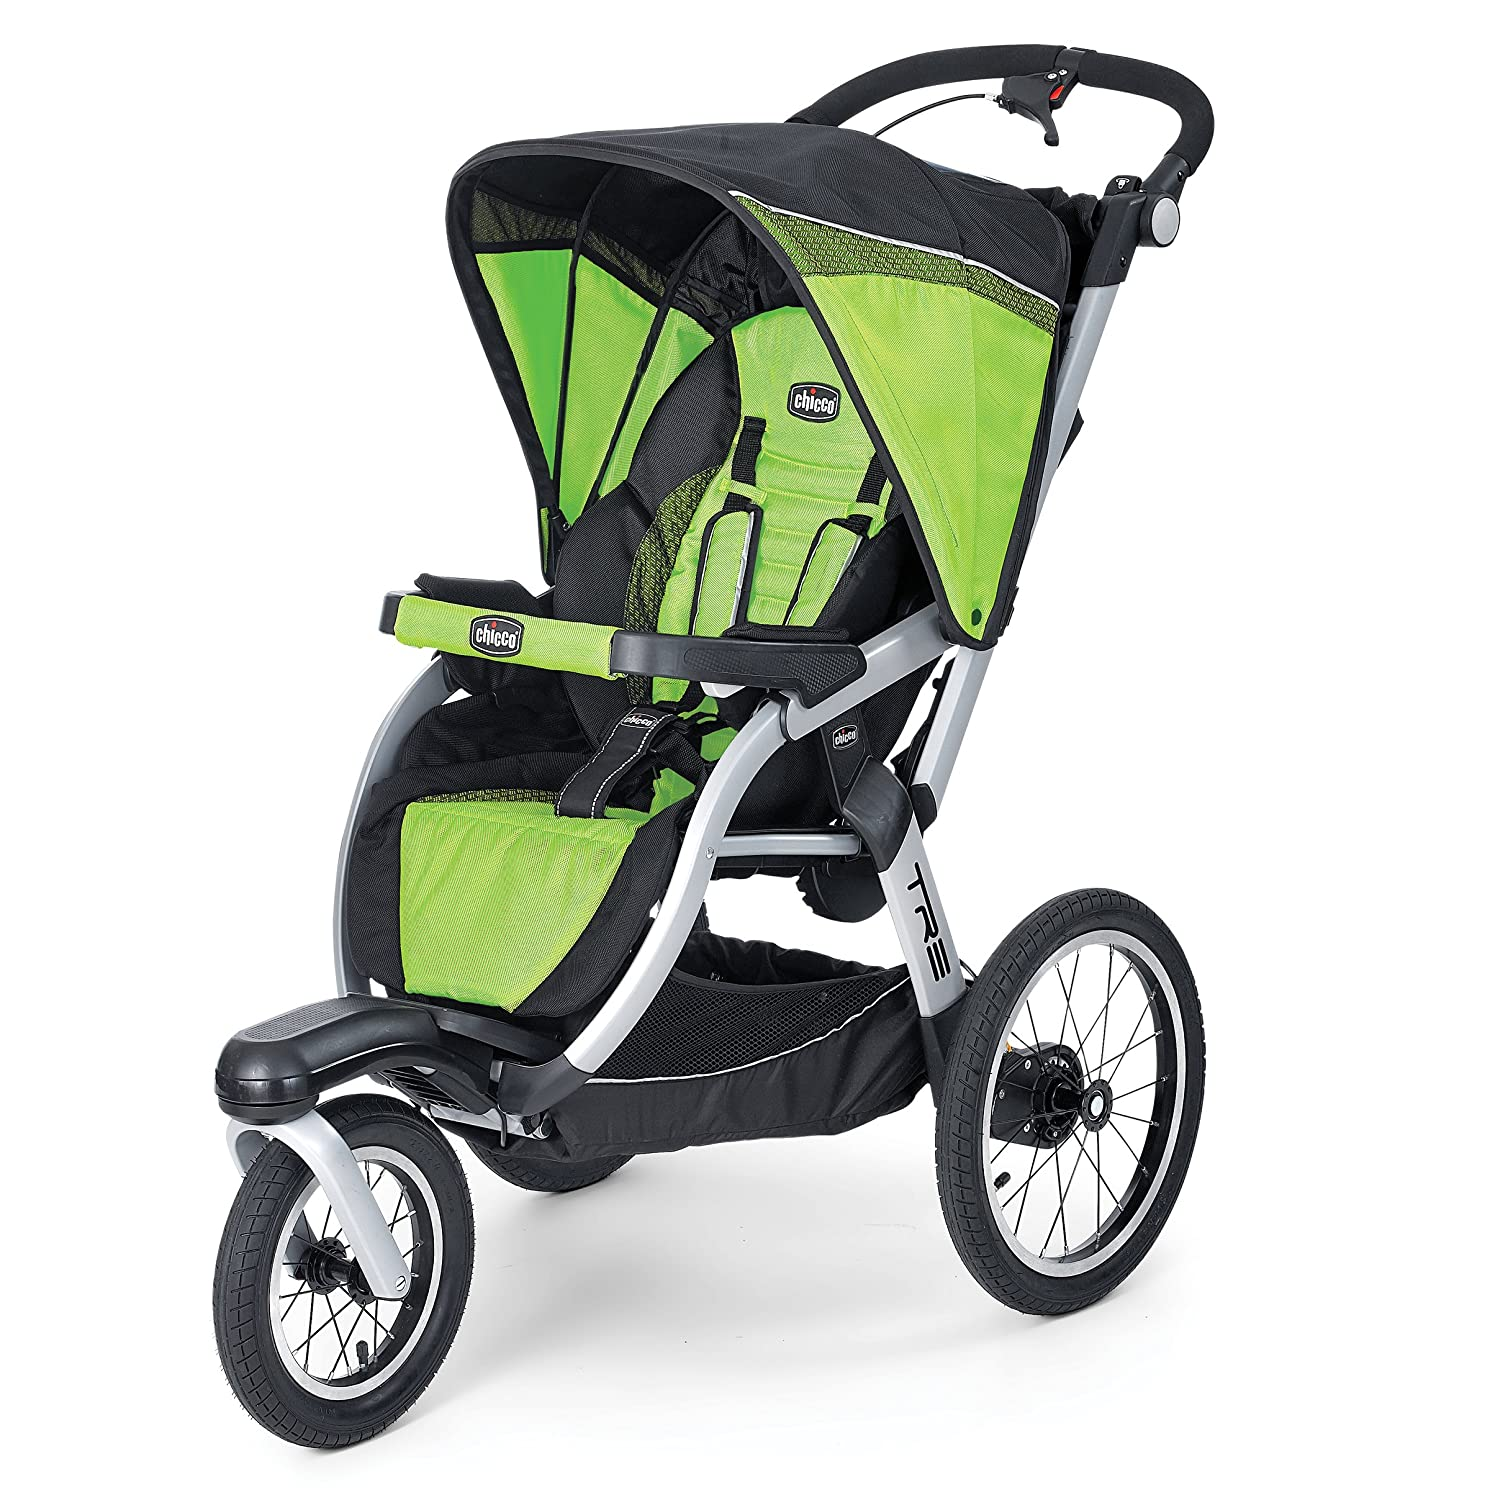 Top 6 Best Running Strollers Reviews in 2020 2